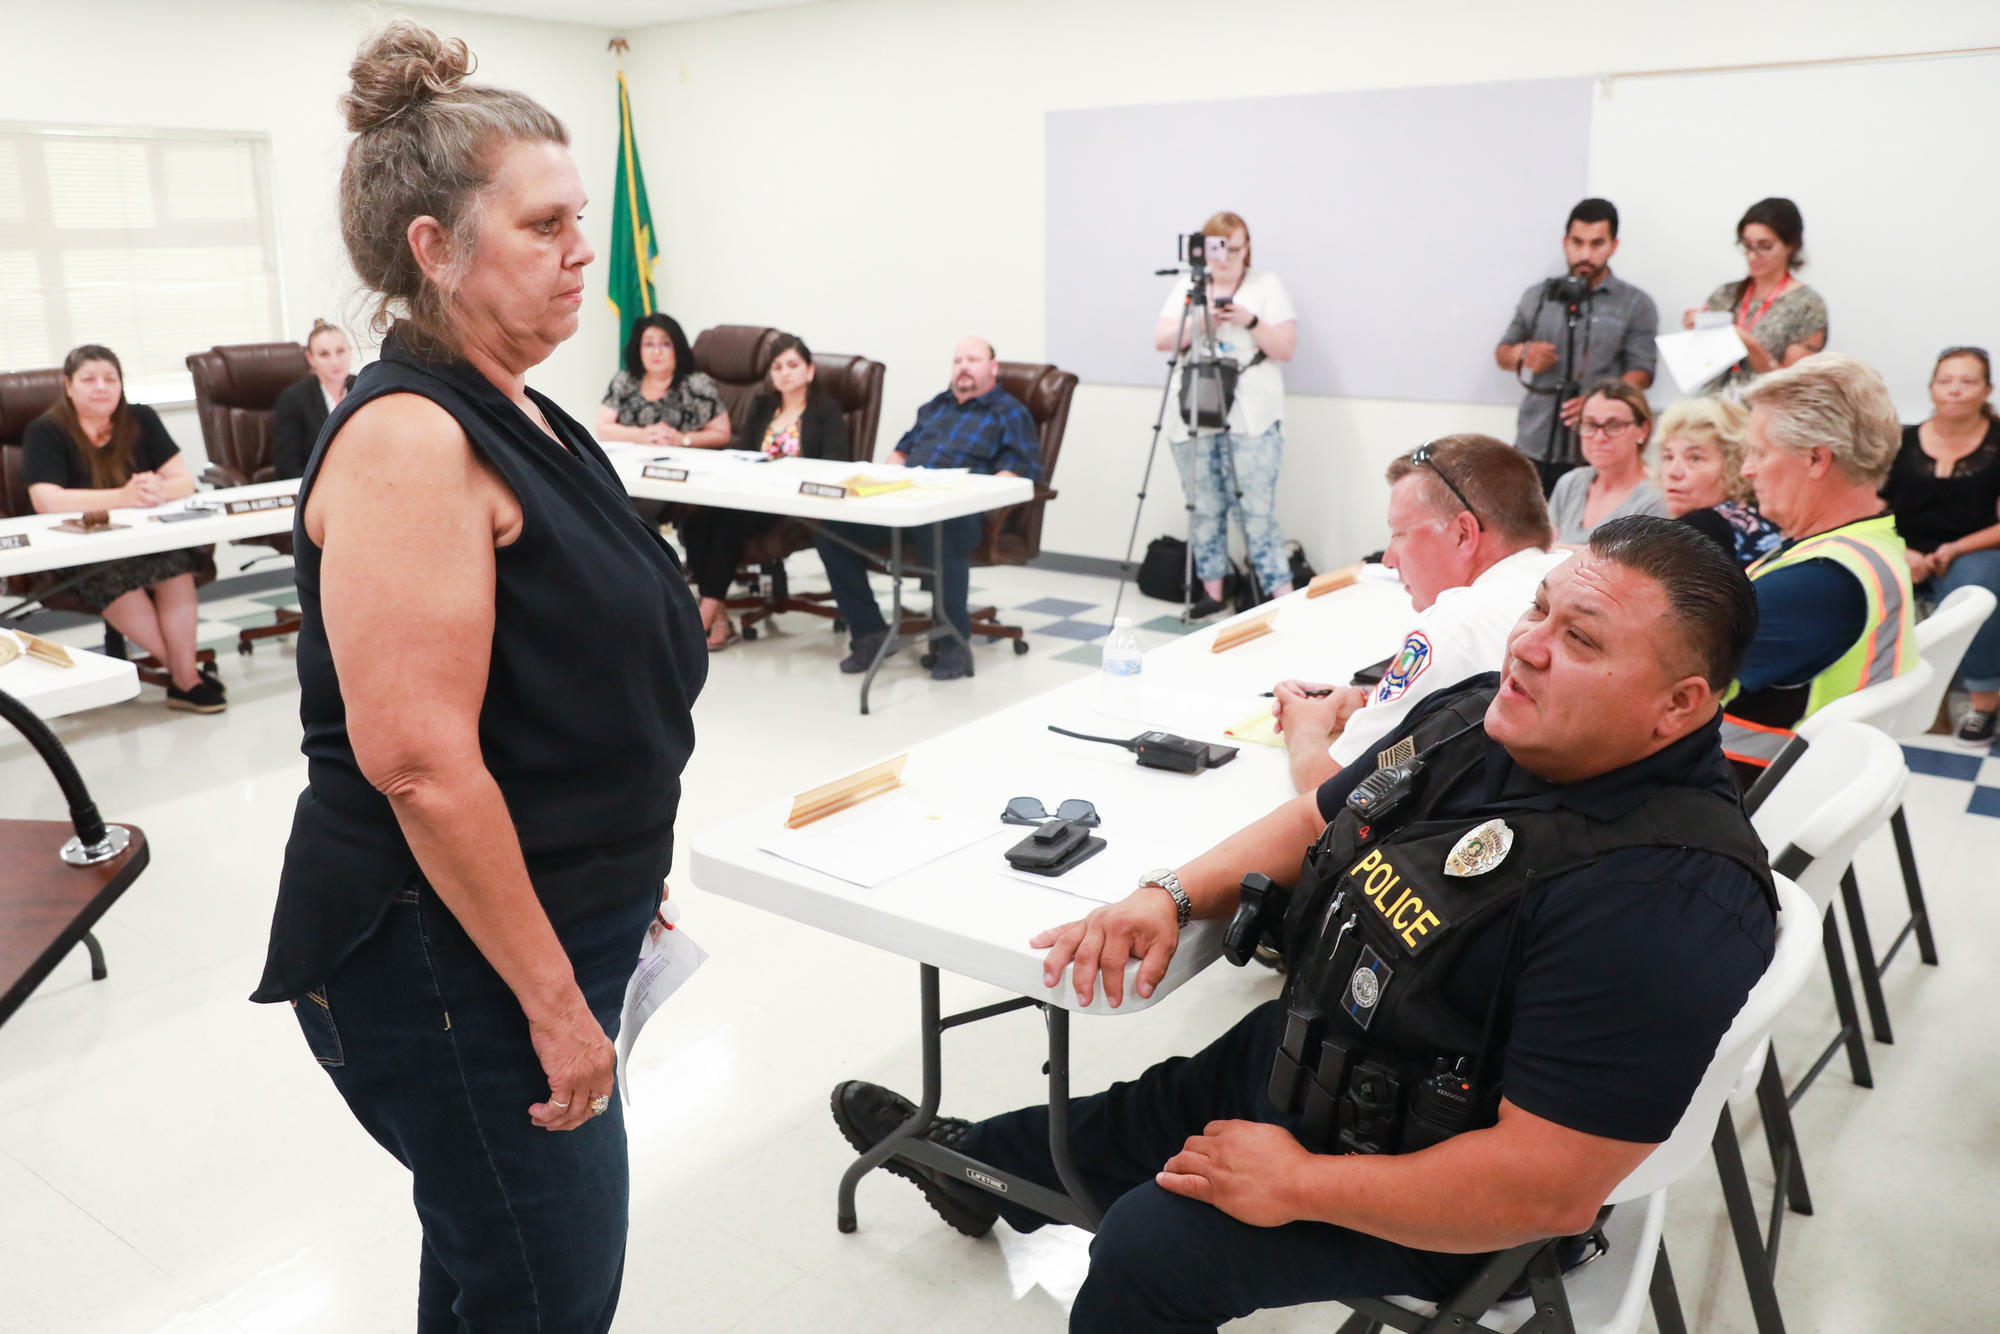 Wapato citizen stands before the town's police chief